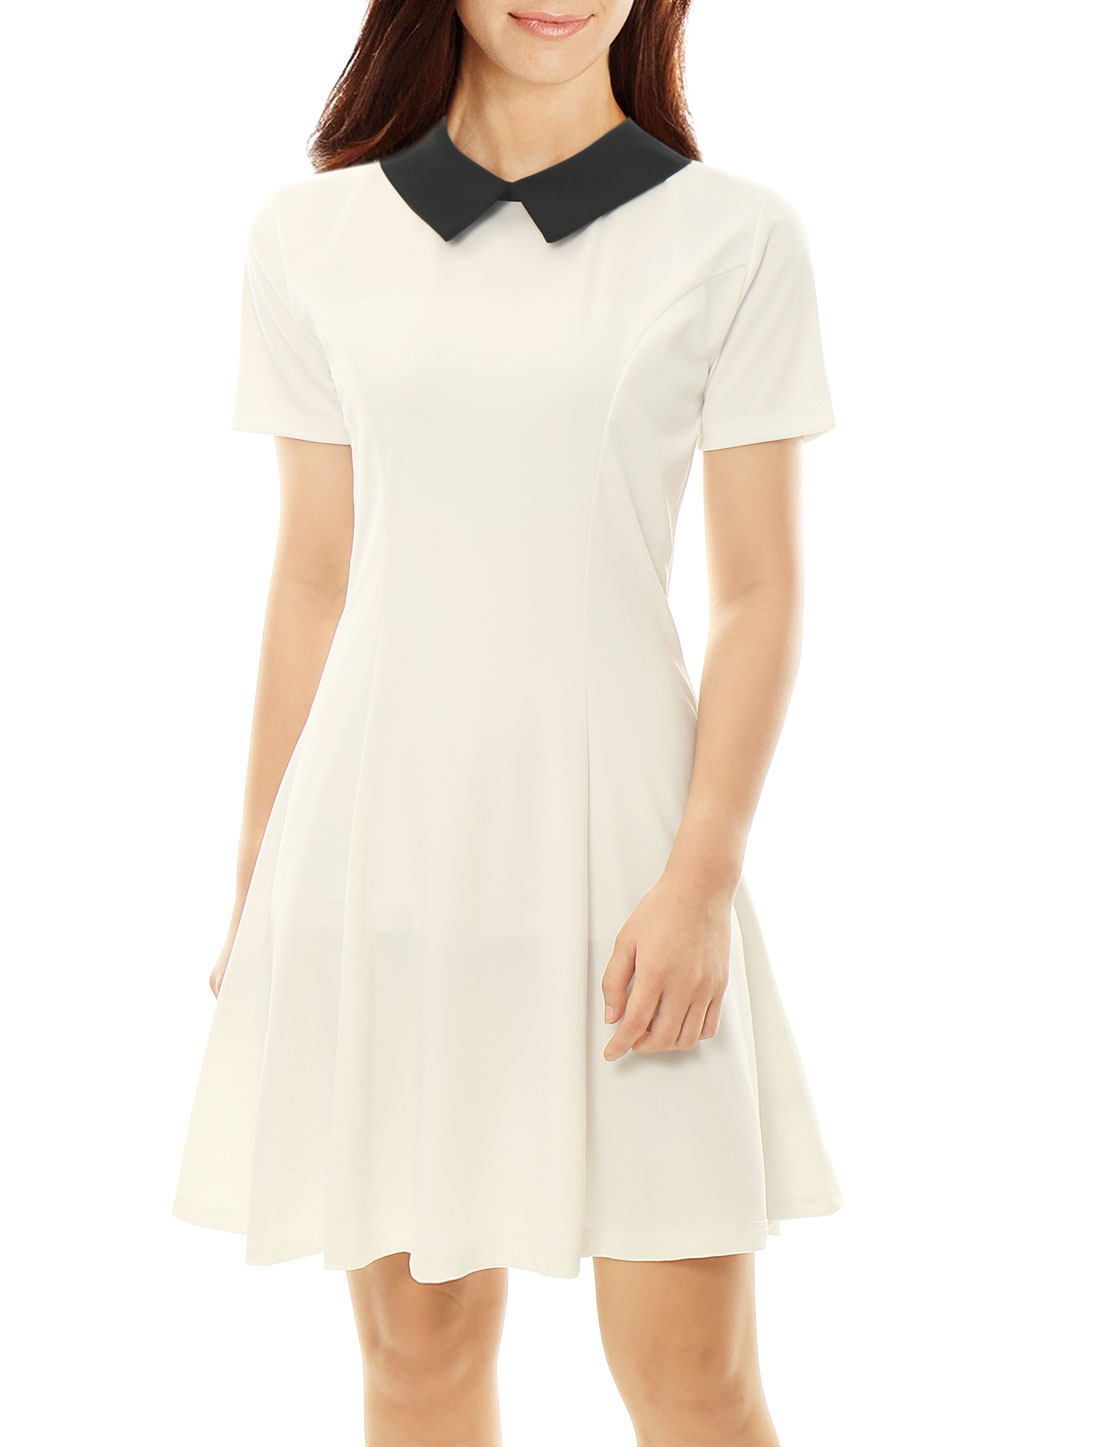 Women Contrast Doll Collar Short Sleeves Flare Dress White XS